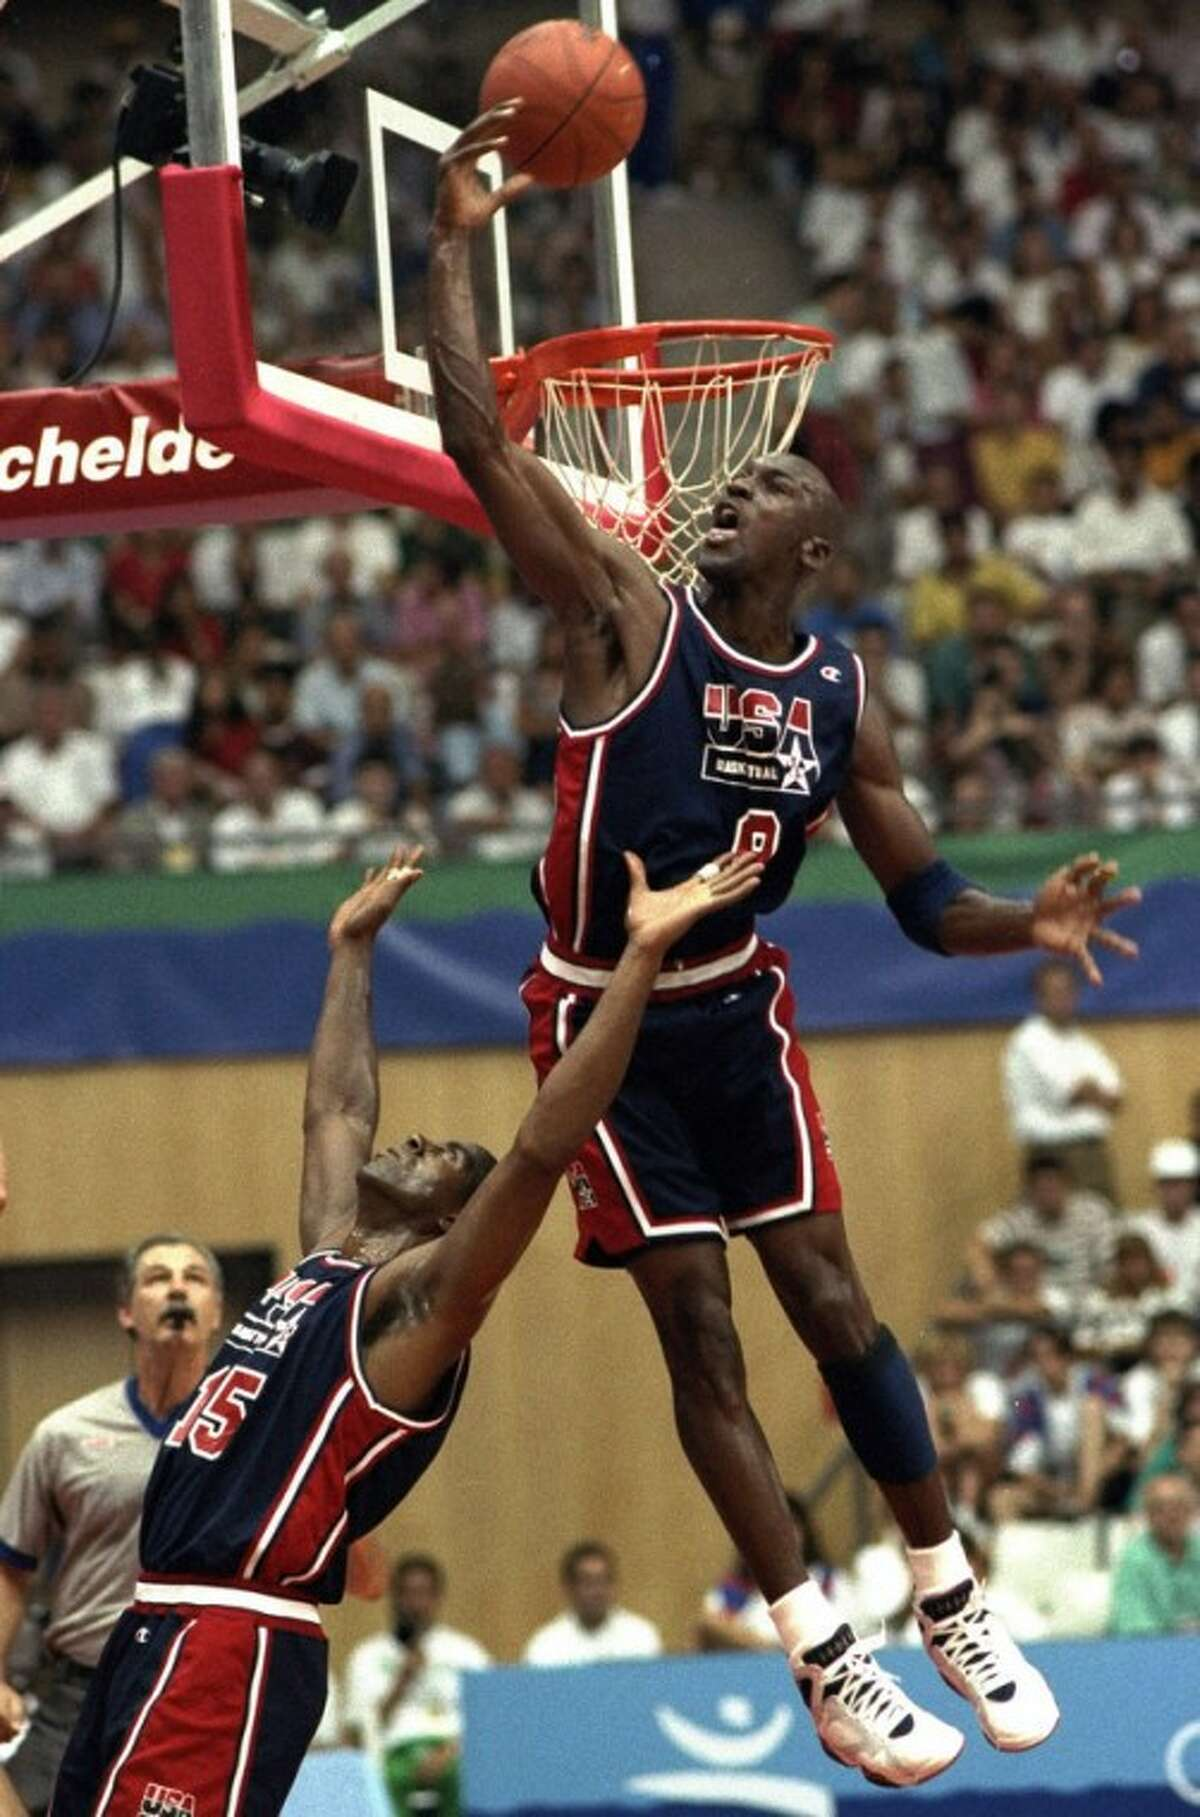 FILE - In this July 27, 1992 file photo, USA's Michael Jordan sails high above teammate Magic Johnson knocking away a shot during the first half of their preliminary round basketball game with Croatia at the Summer Olympics in Barcelona. With USA Basketball and 2K Sports forming a partnership, fans can see what happens when the 1992 Dream Team goes up against this year's Olympic gold medal winner once NBA 2K13 hits the shelves this fall. (AP Photo/Susan Ragan, File)